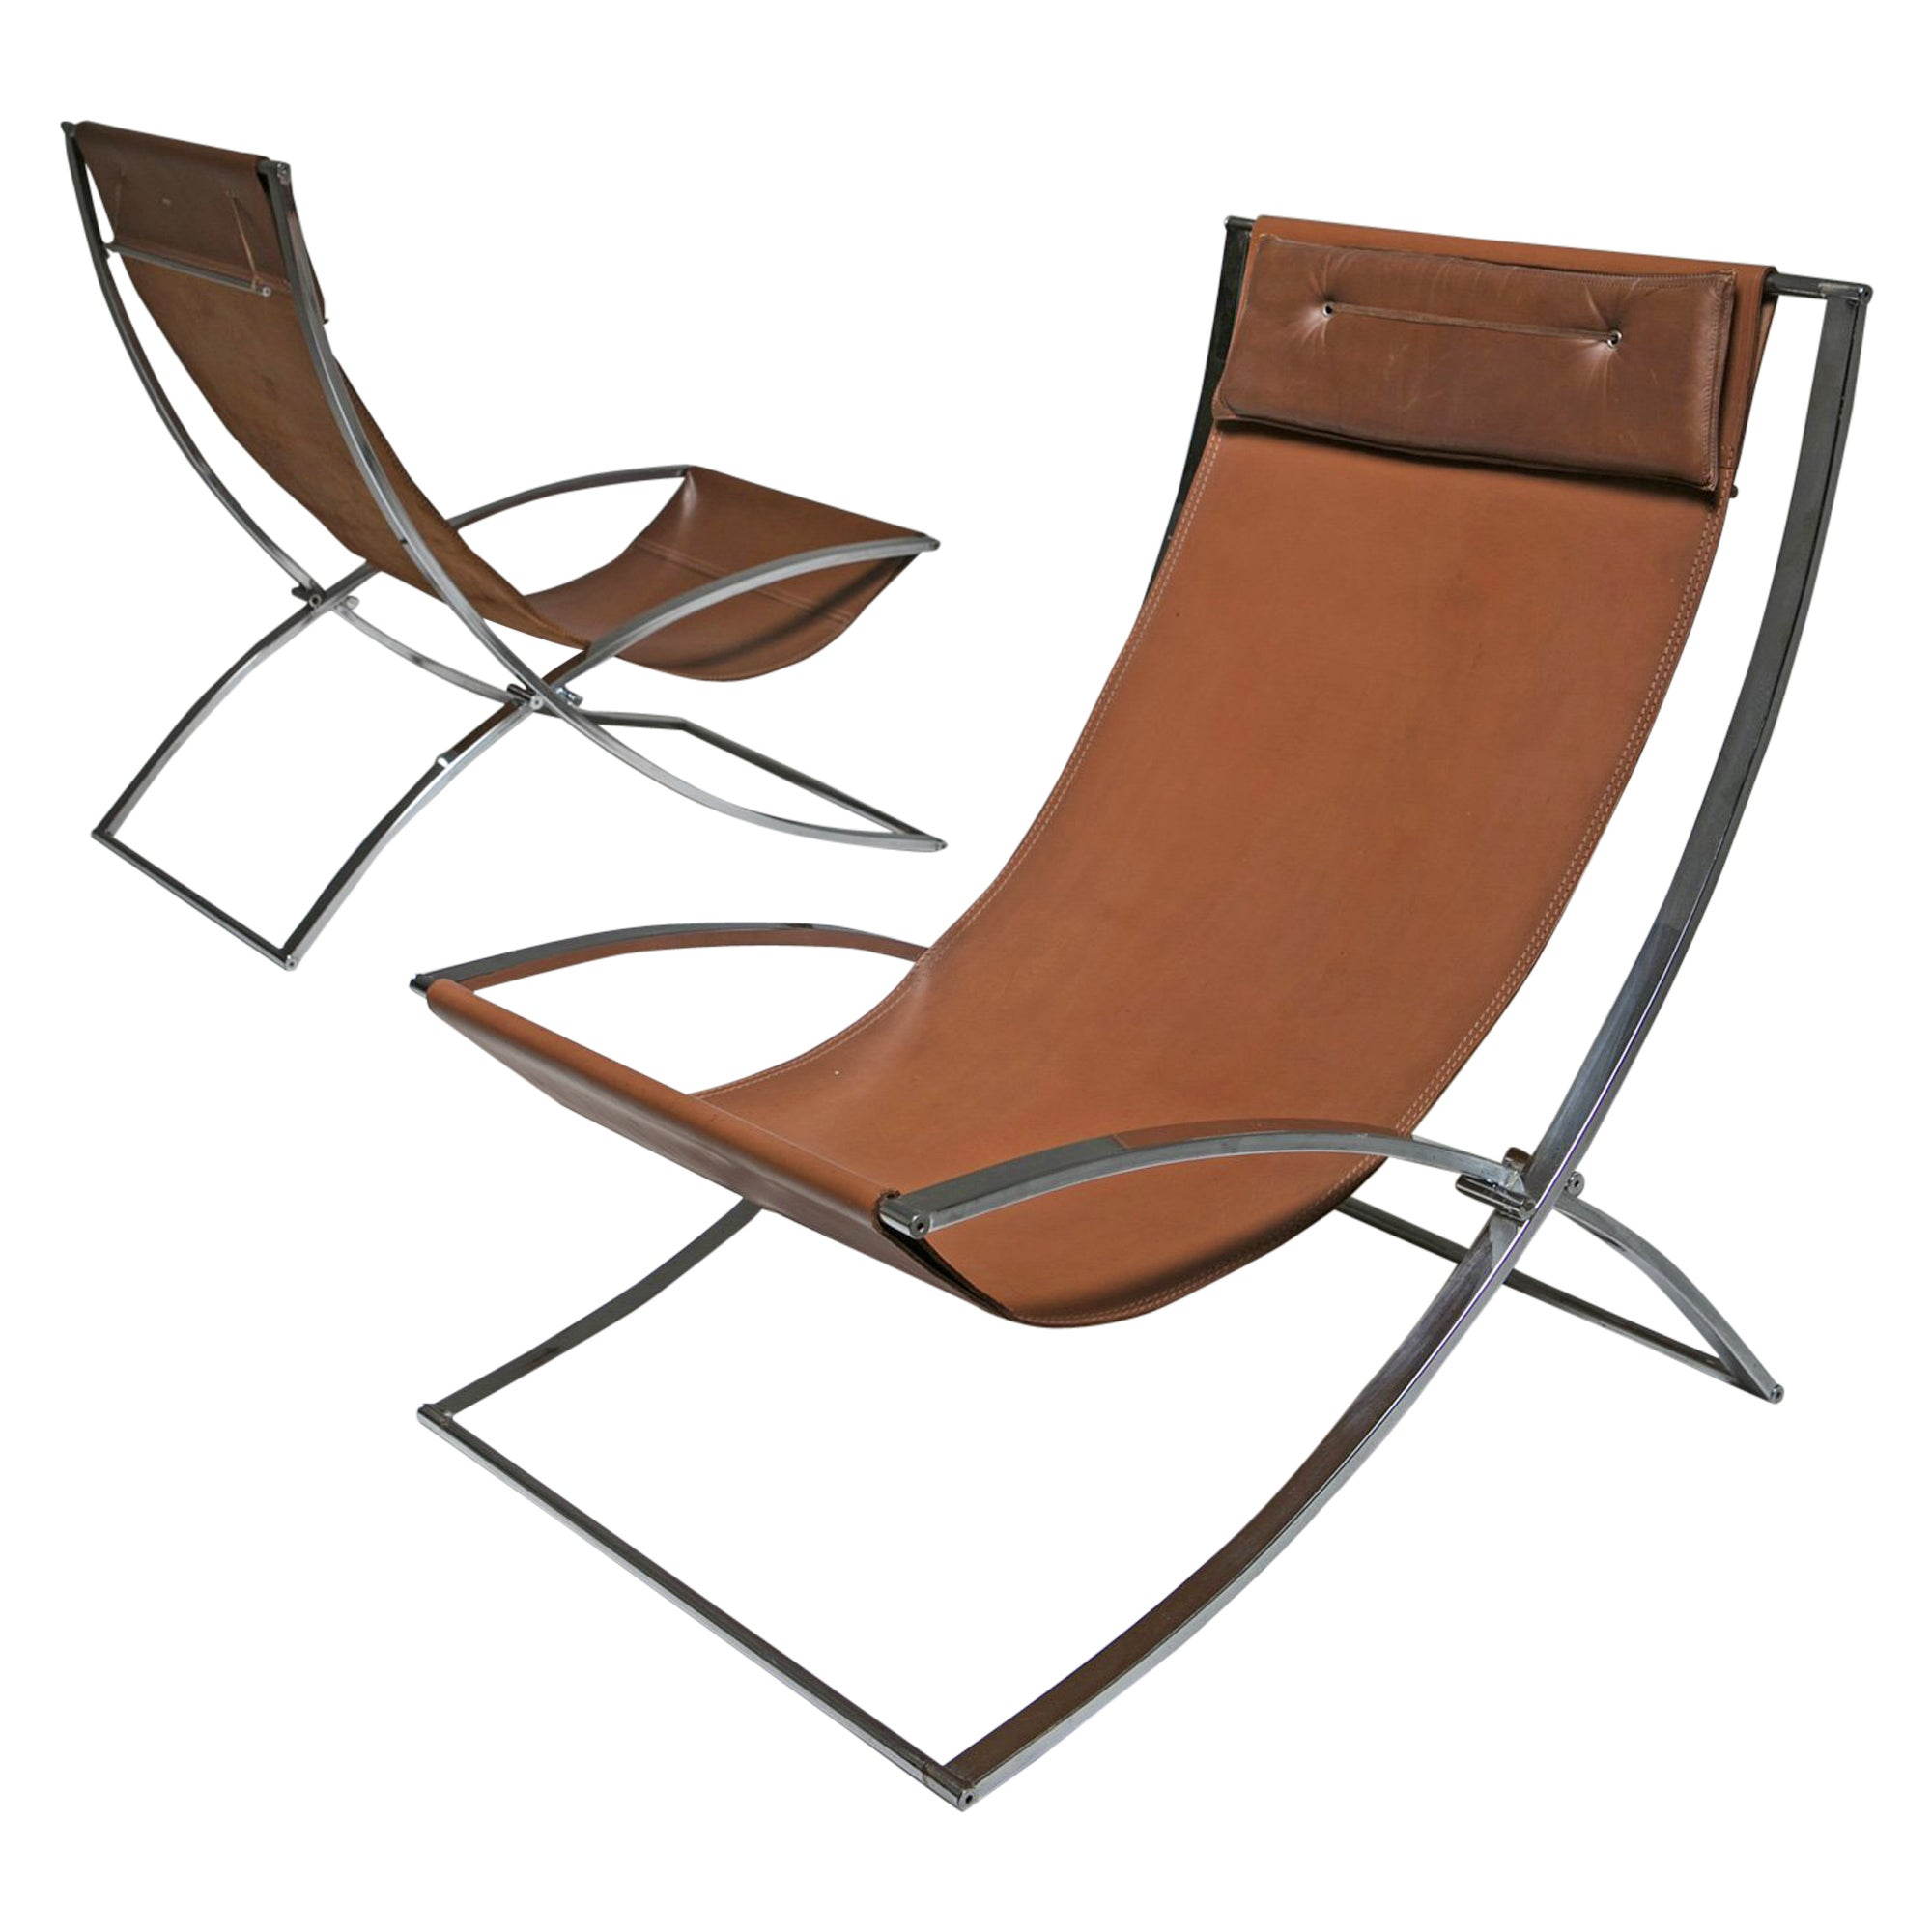 Pair of Lounge Chairs by Marcello Cuneo for Mobel